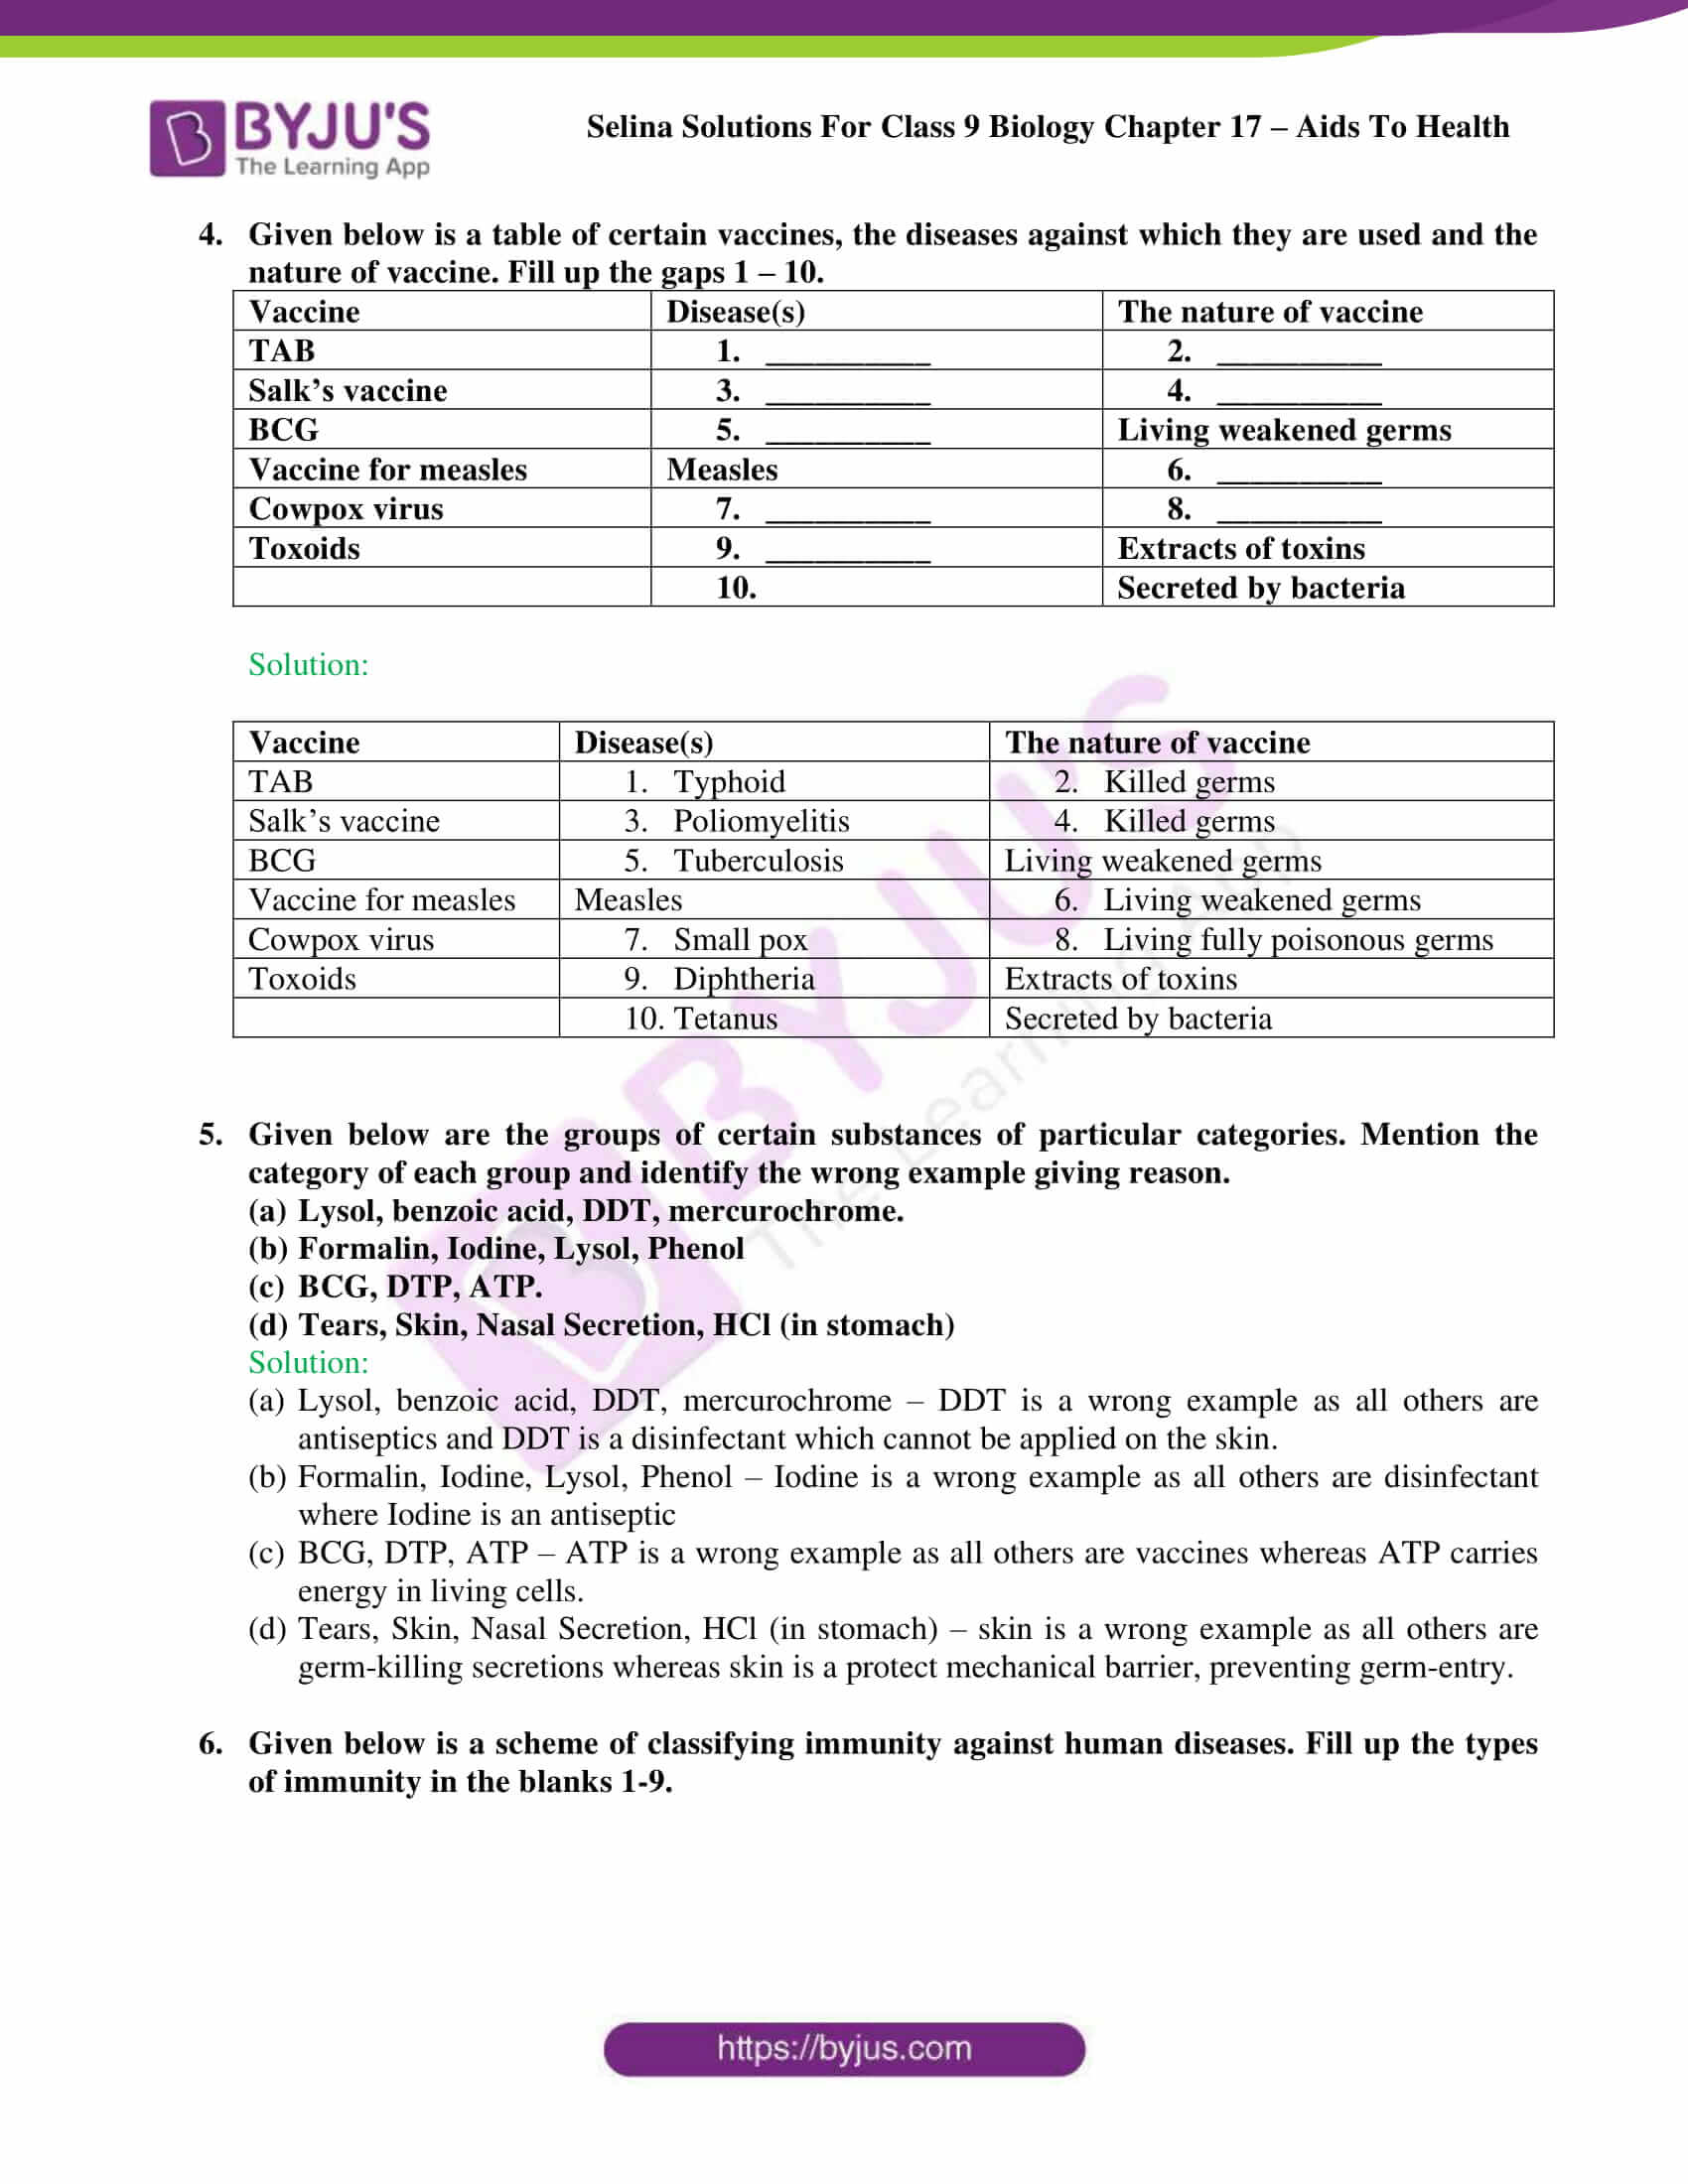 Selina Solutions Class 9 Biology Chapter 17 part 08